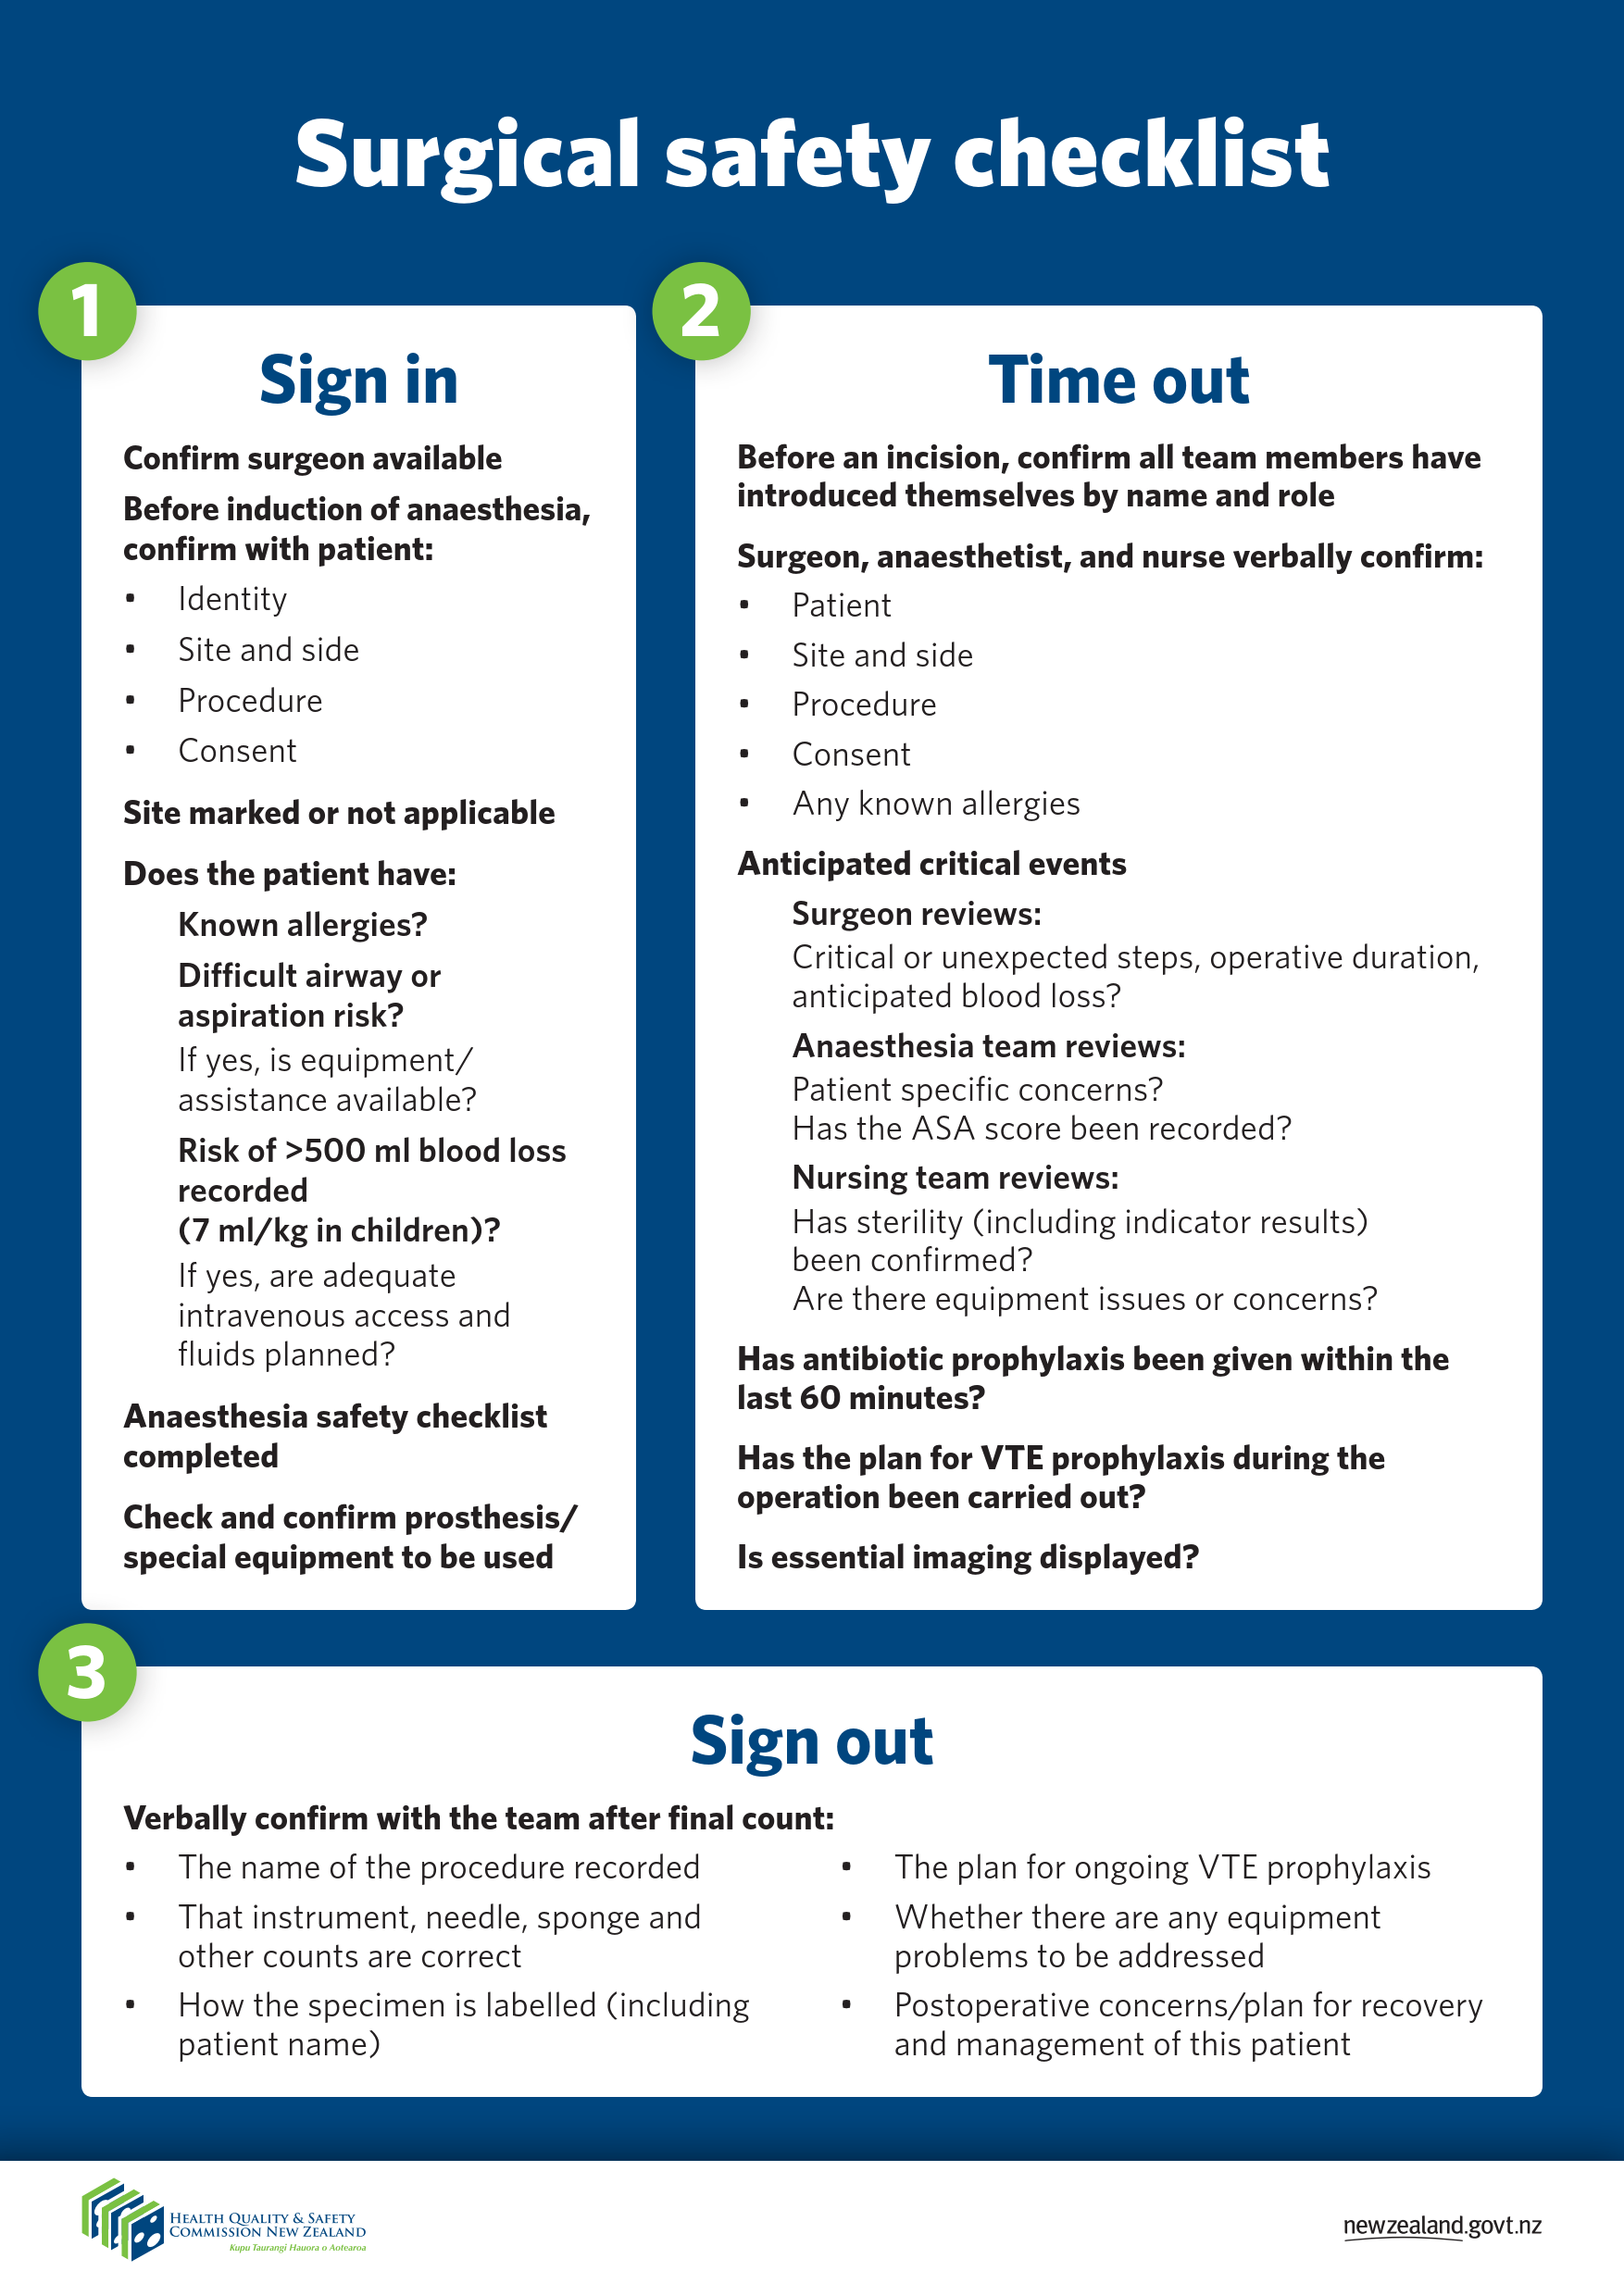 surgical safety checklist posters Jun 2015 1